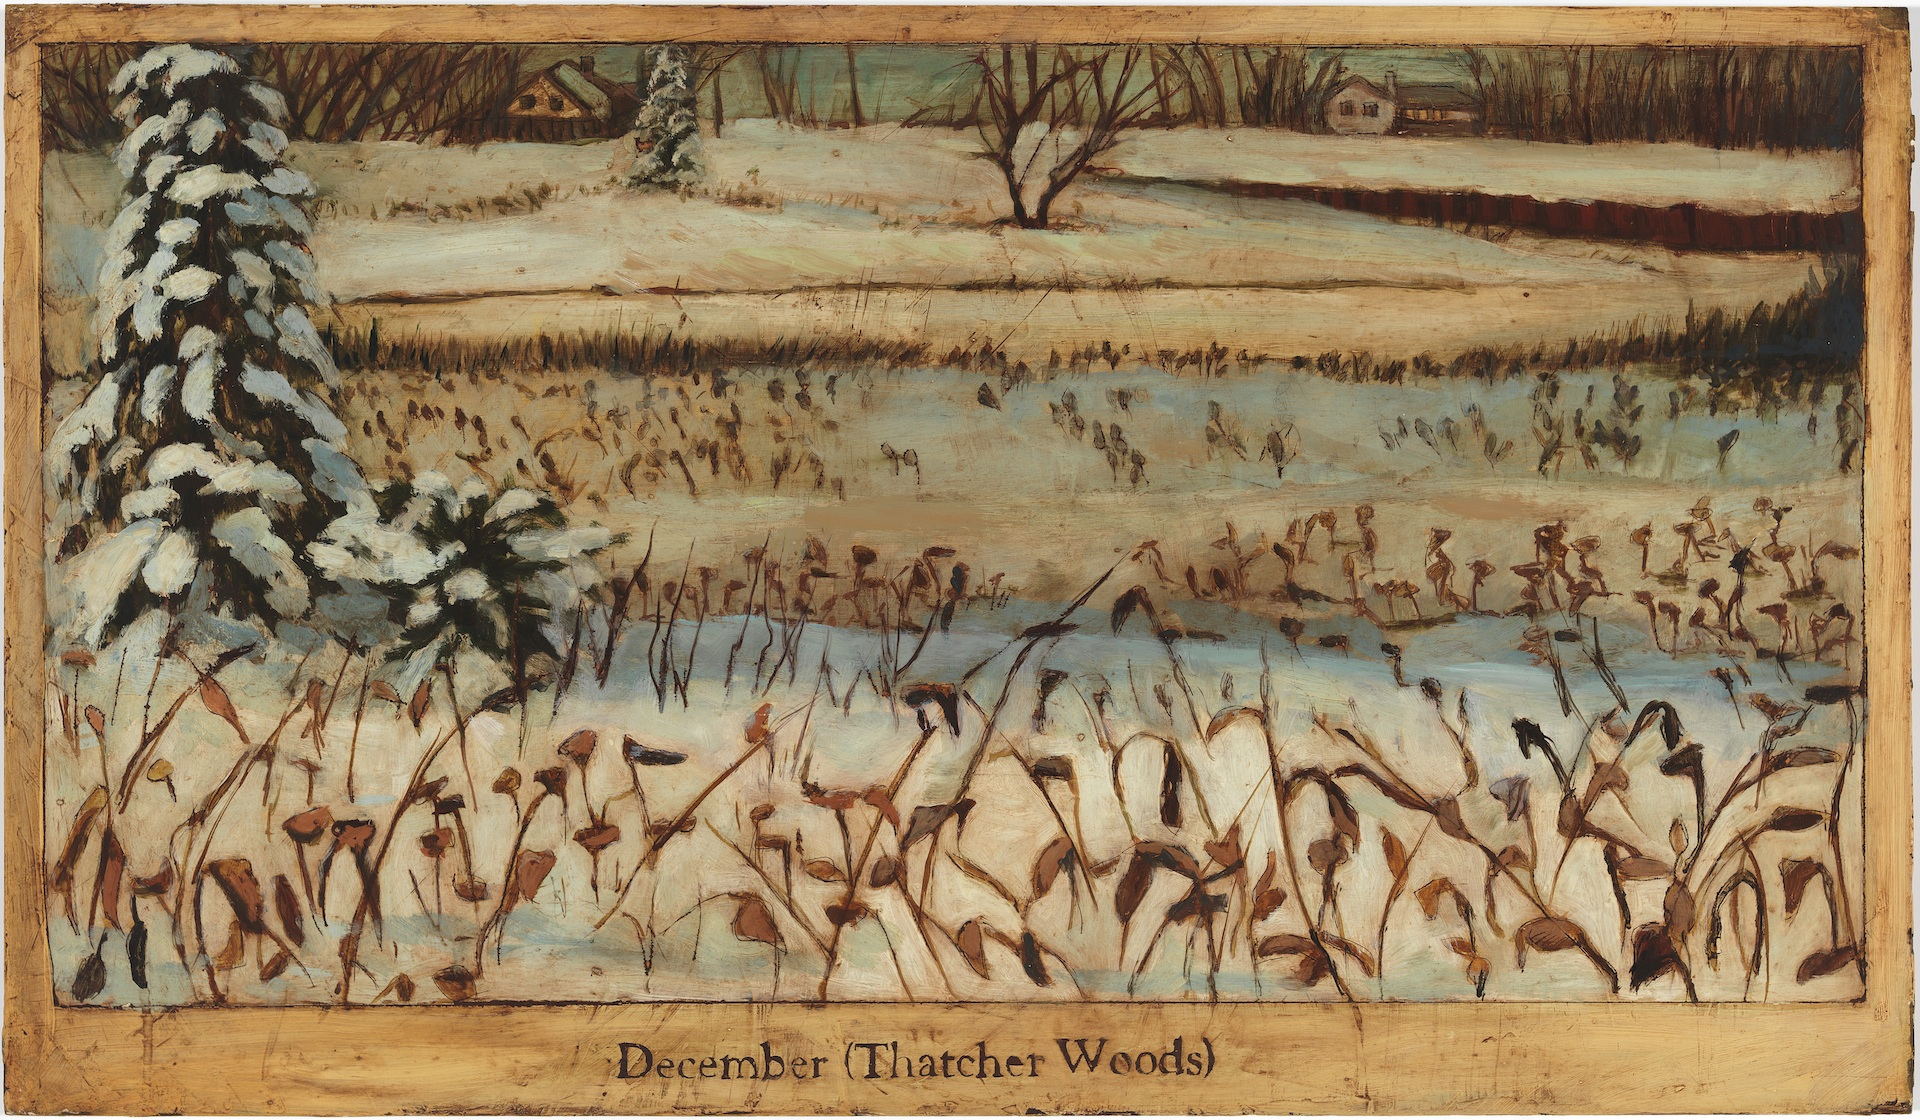 December (Thatcher Woods)